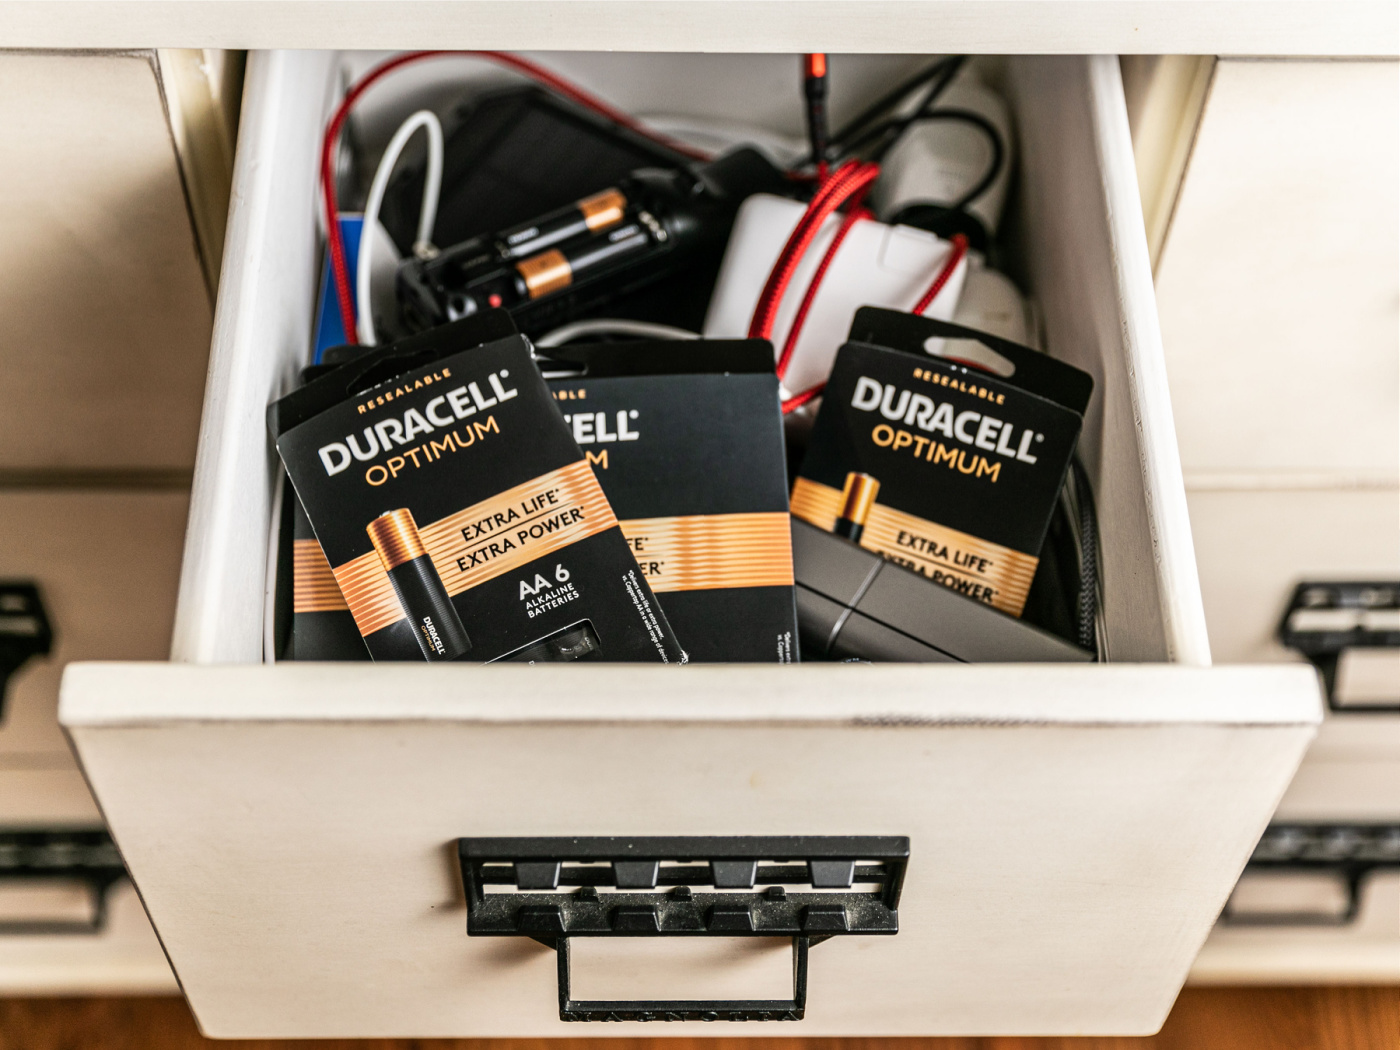 Upgrade Your Device with Duracell Optimum* - Get 25% OFF Any Duracell 6ct or Higher on I Heart Publix 1